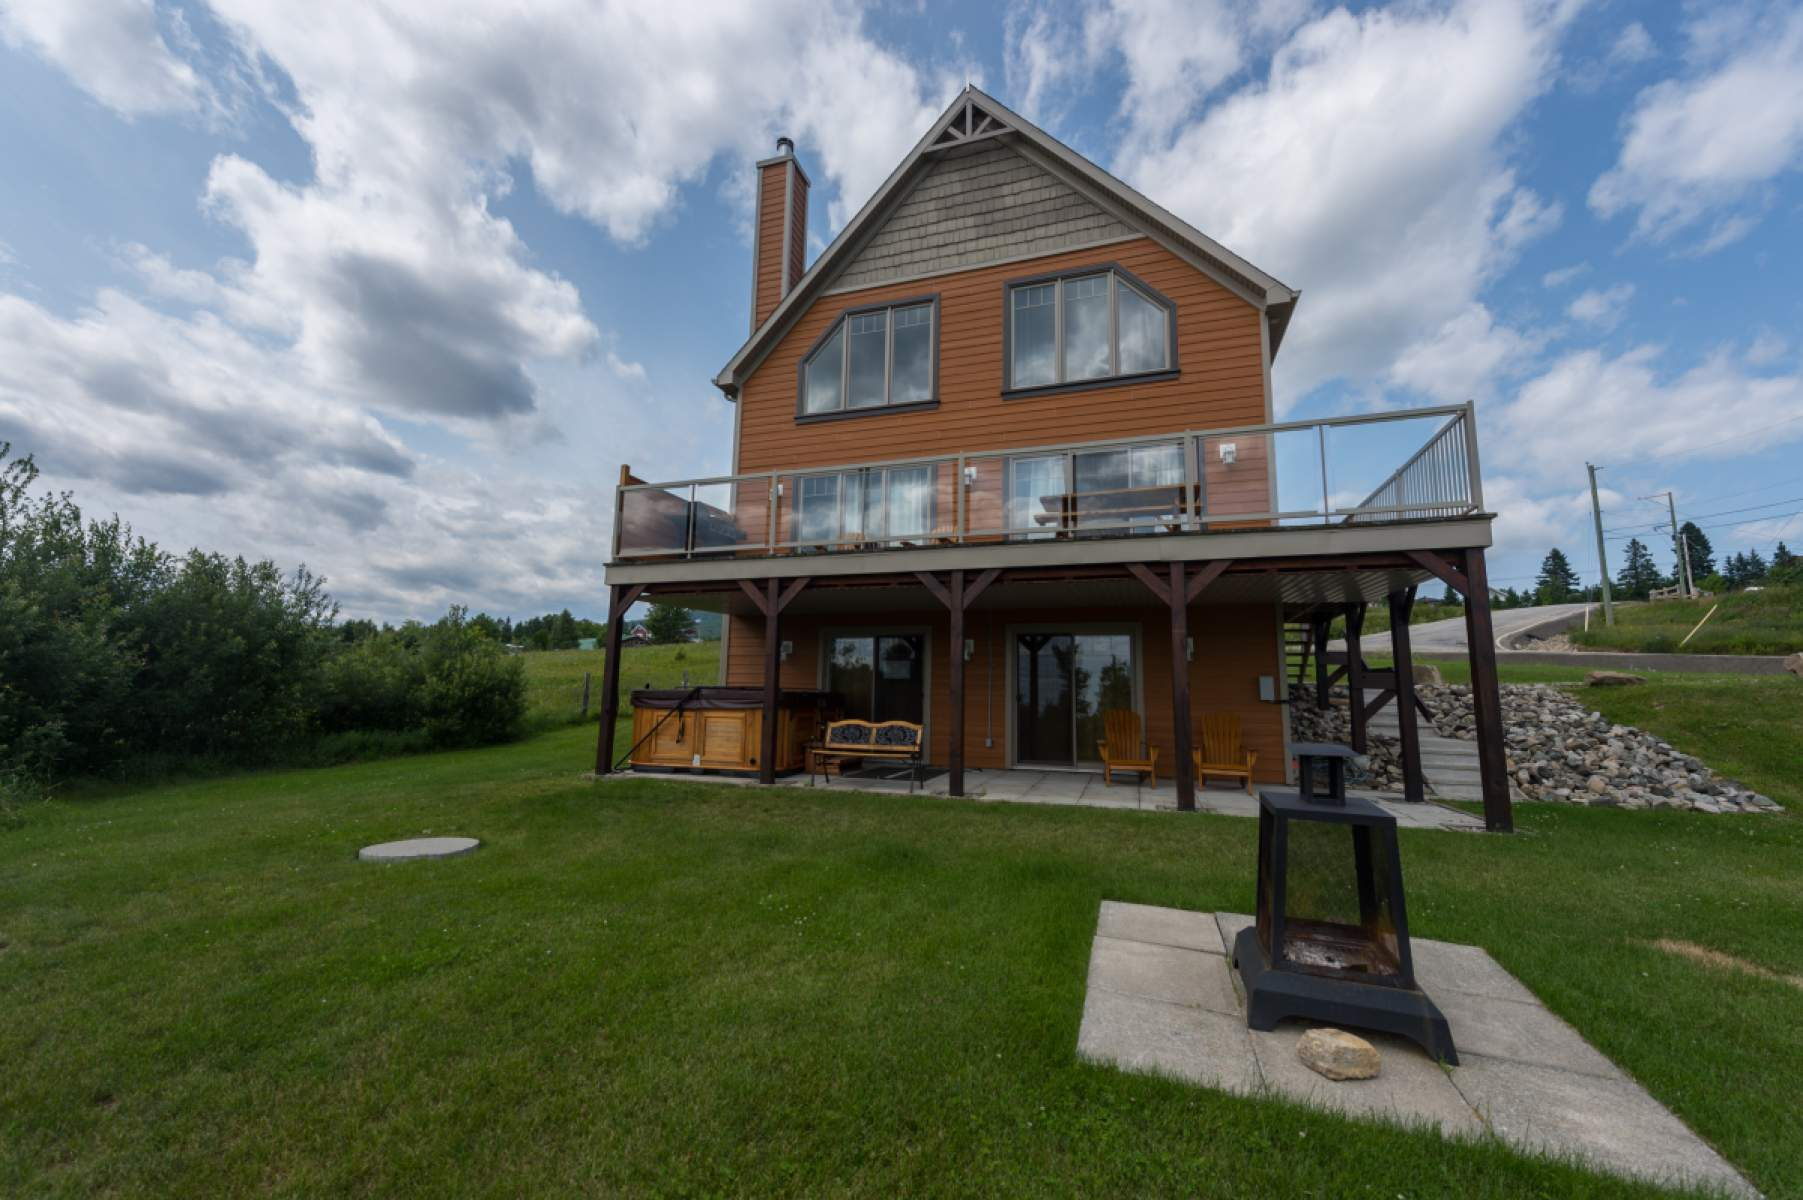 chalets cottages maryse rental rentals at the st en welcome to francois riviere petite charlevoix le cottage